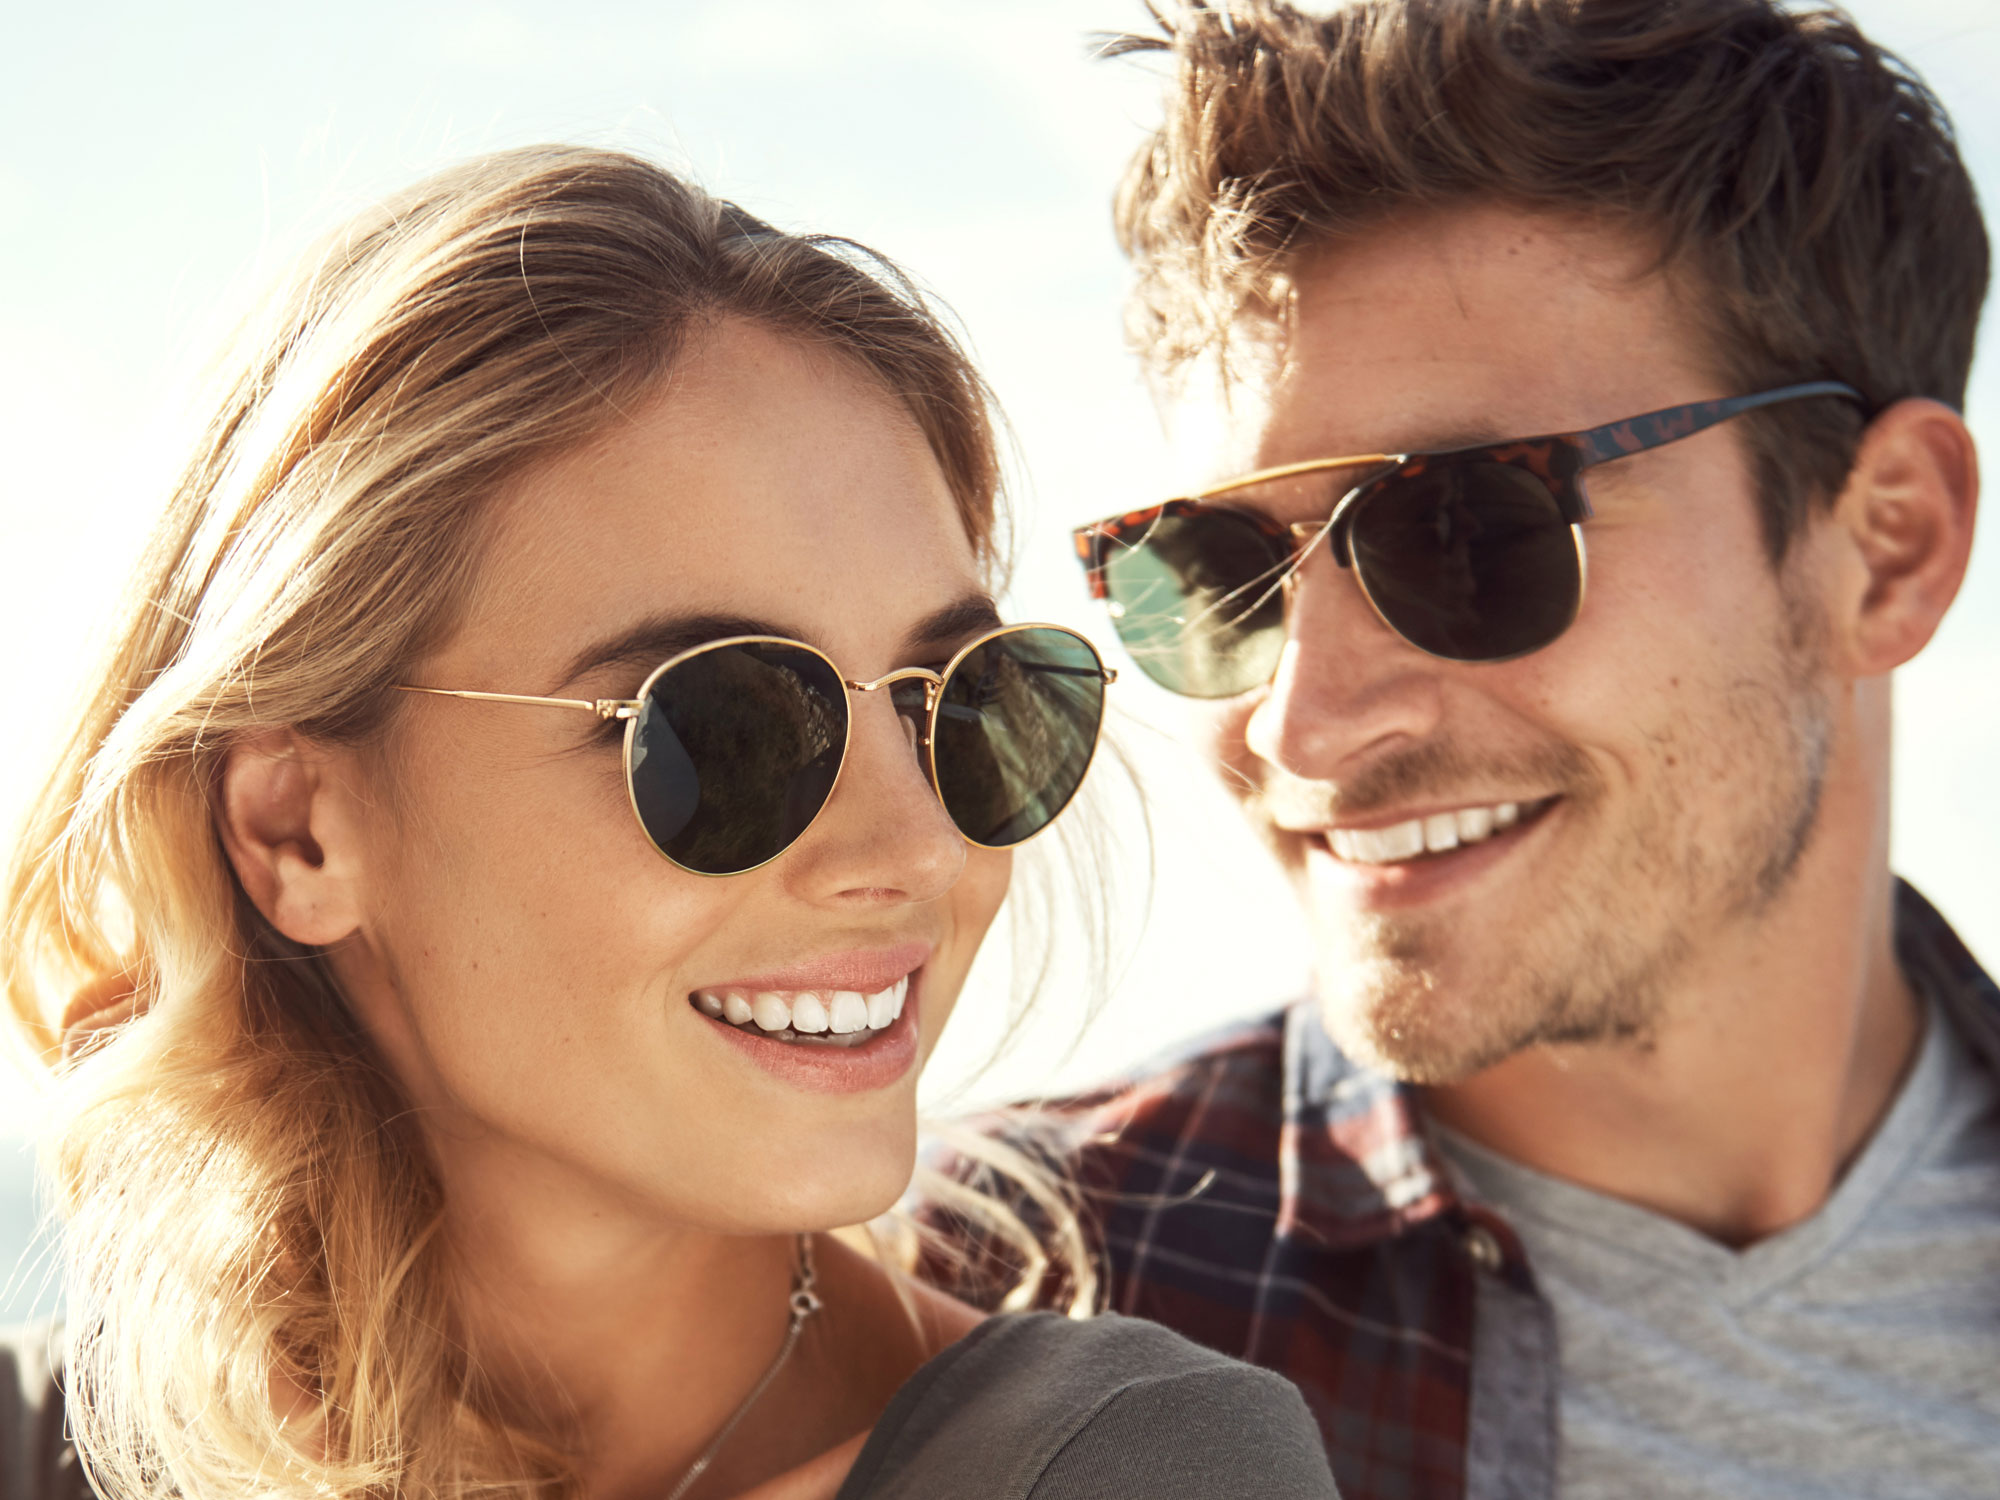 Polarized - Aspect Polarized sunglasses feature the latest in polarized lens technology glare free vision in a variety of frame and lens colour options. The result are clearer vision and reduced eye fatigue and headaches due to glare exposure.